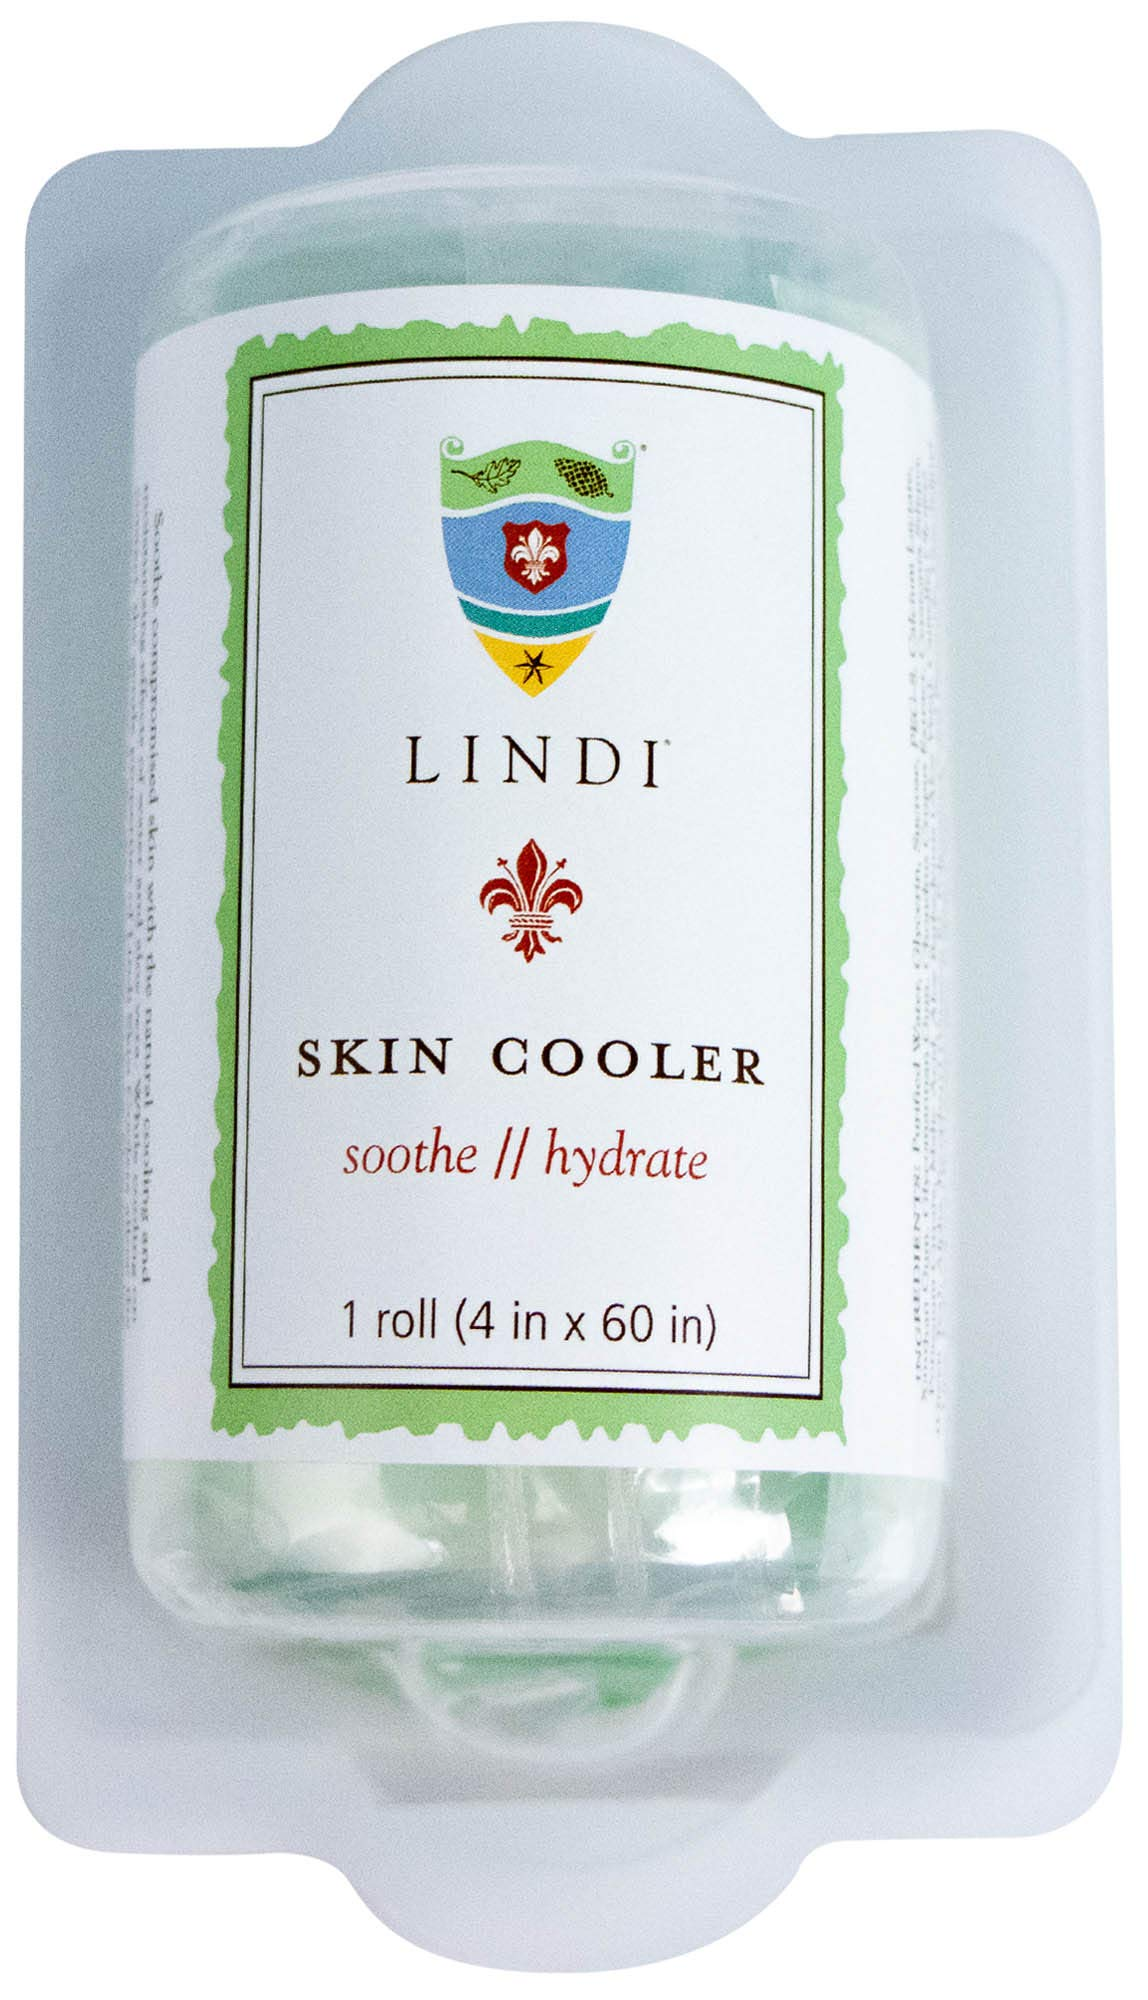 Lindi Skin Cooler Roll, 1 piece 4 inches wide and 60 inches long